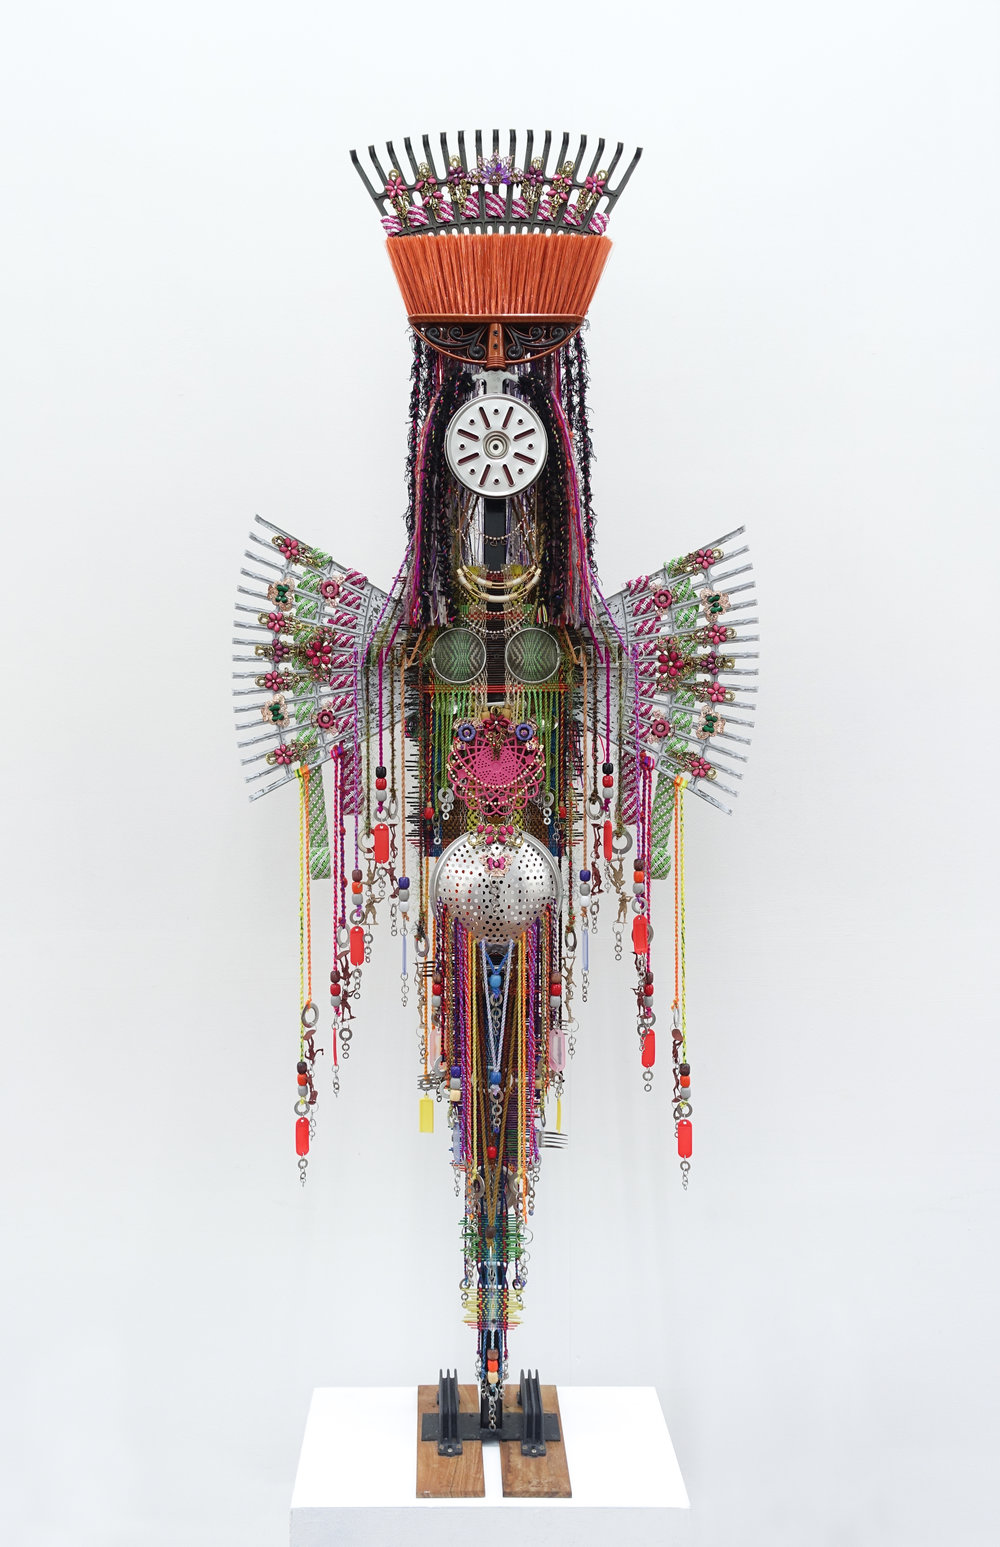 Anne Samat, 'The Goddess of Love', 2017, rattan sticks, yarns, washers, rakes, PVC chains, home, fashion accessories, (kitchen & garden) utensils and stationery items, 304 x 127 x 20cm. Image courtesy of Richard Koh Fine Art and the artist.